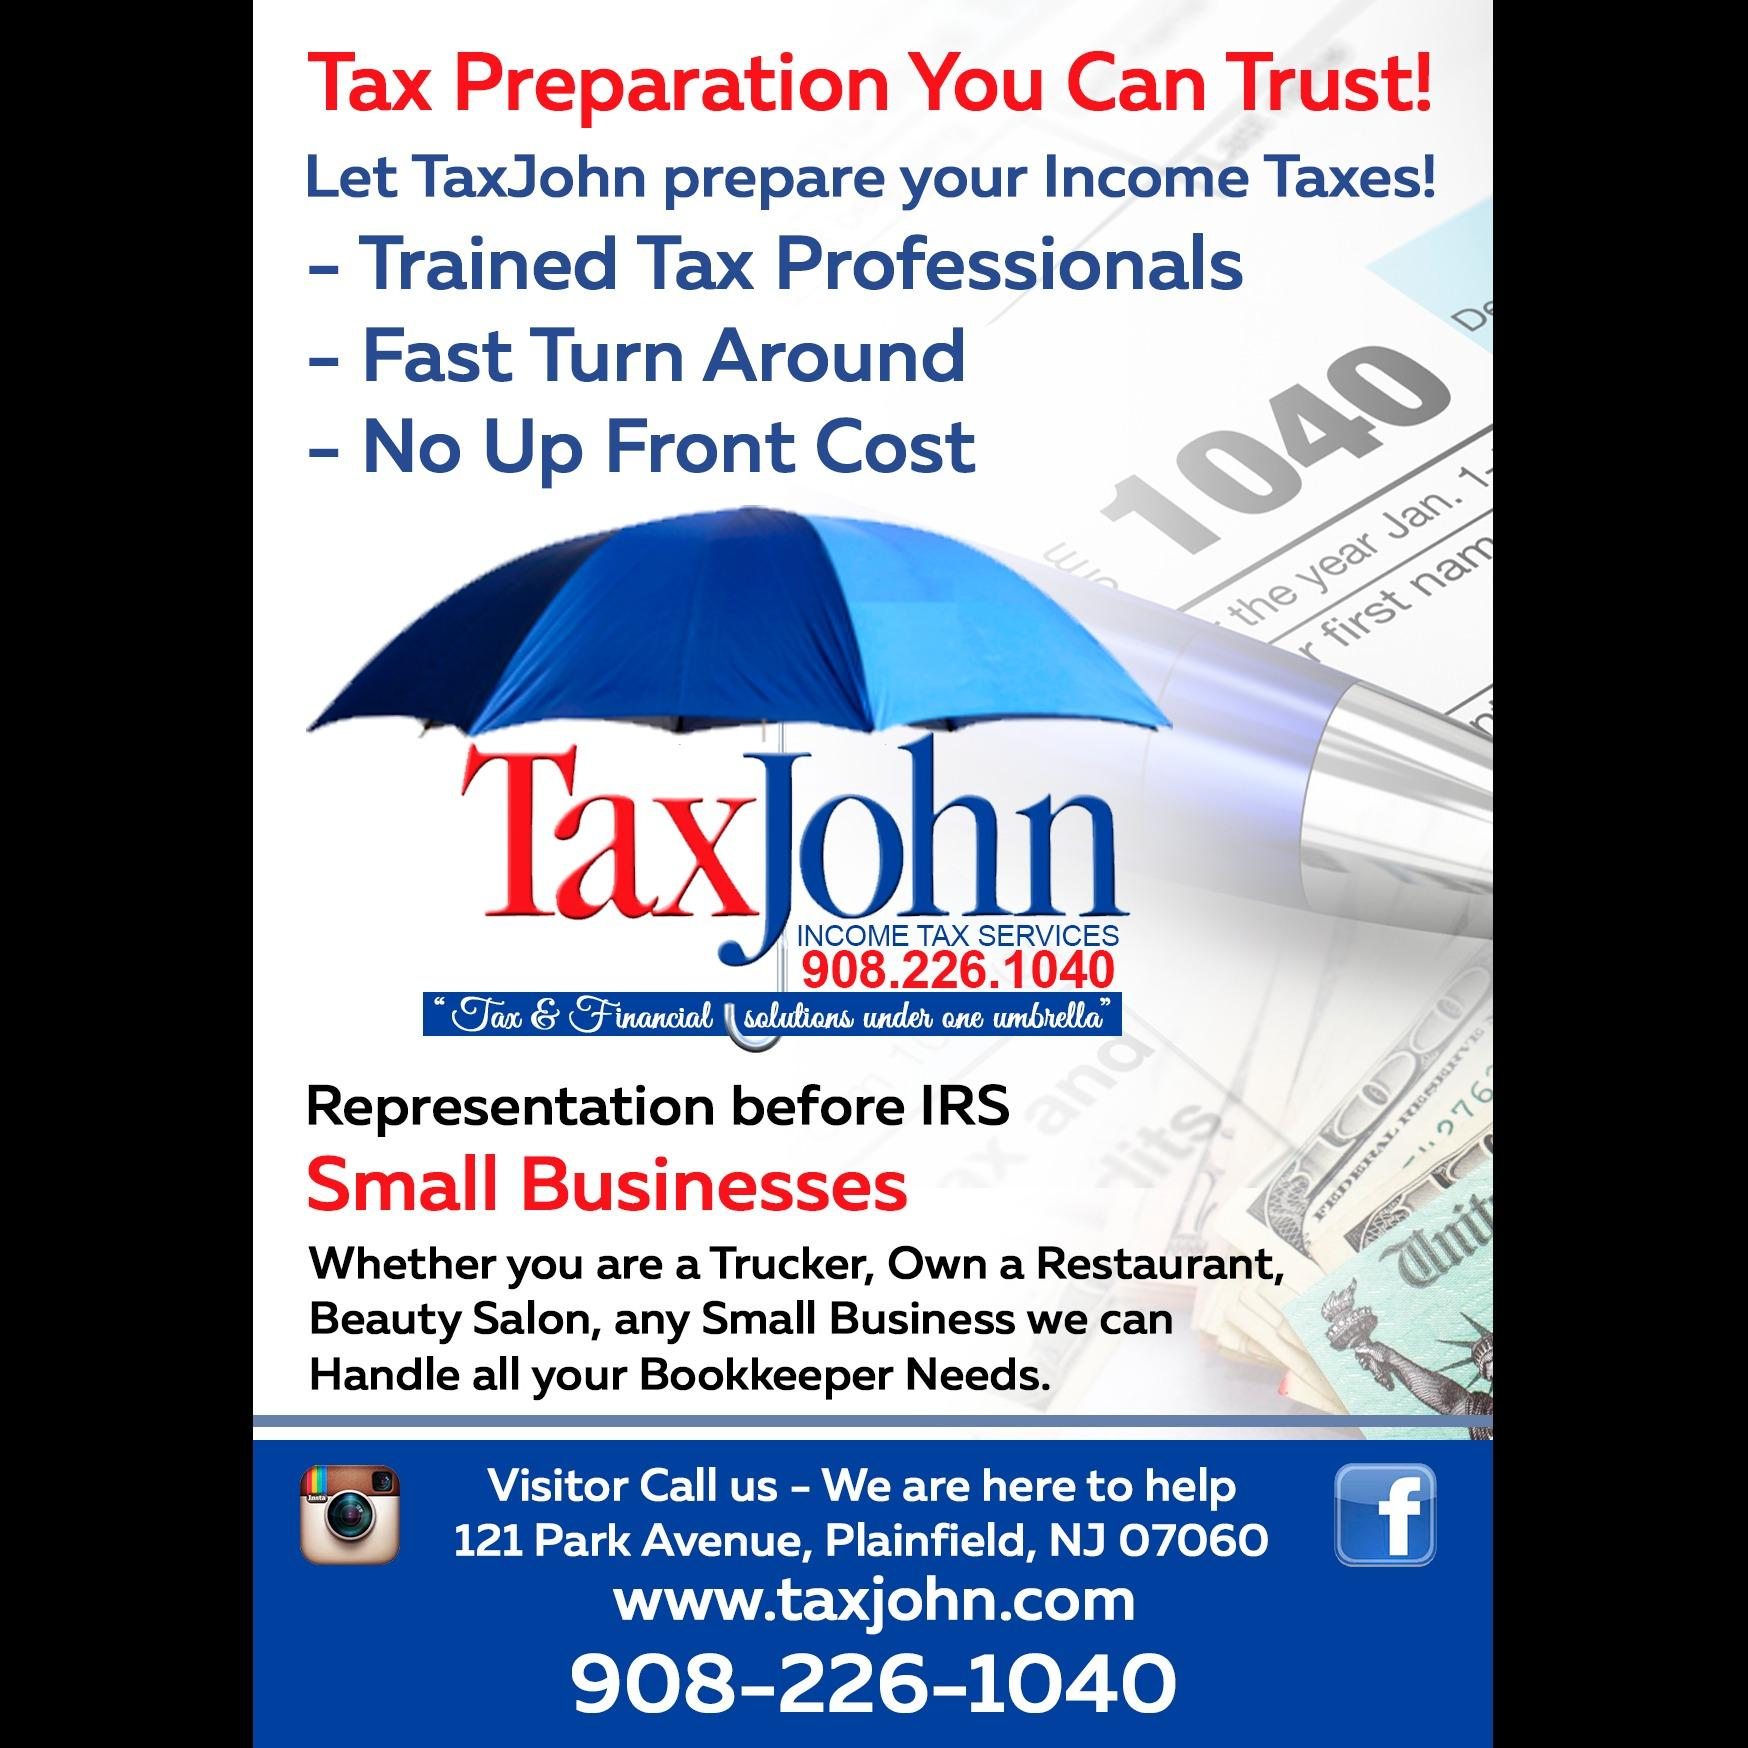 Tax John Income Tax Services